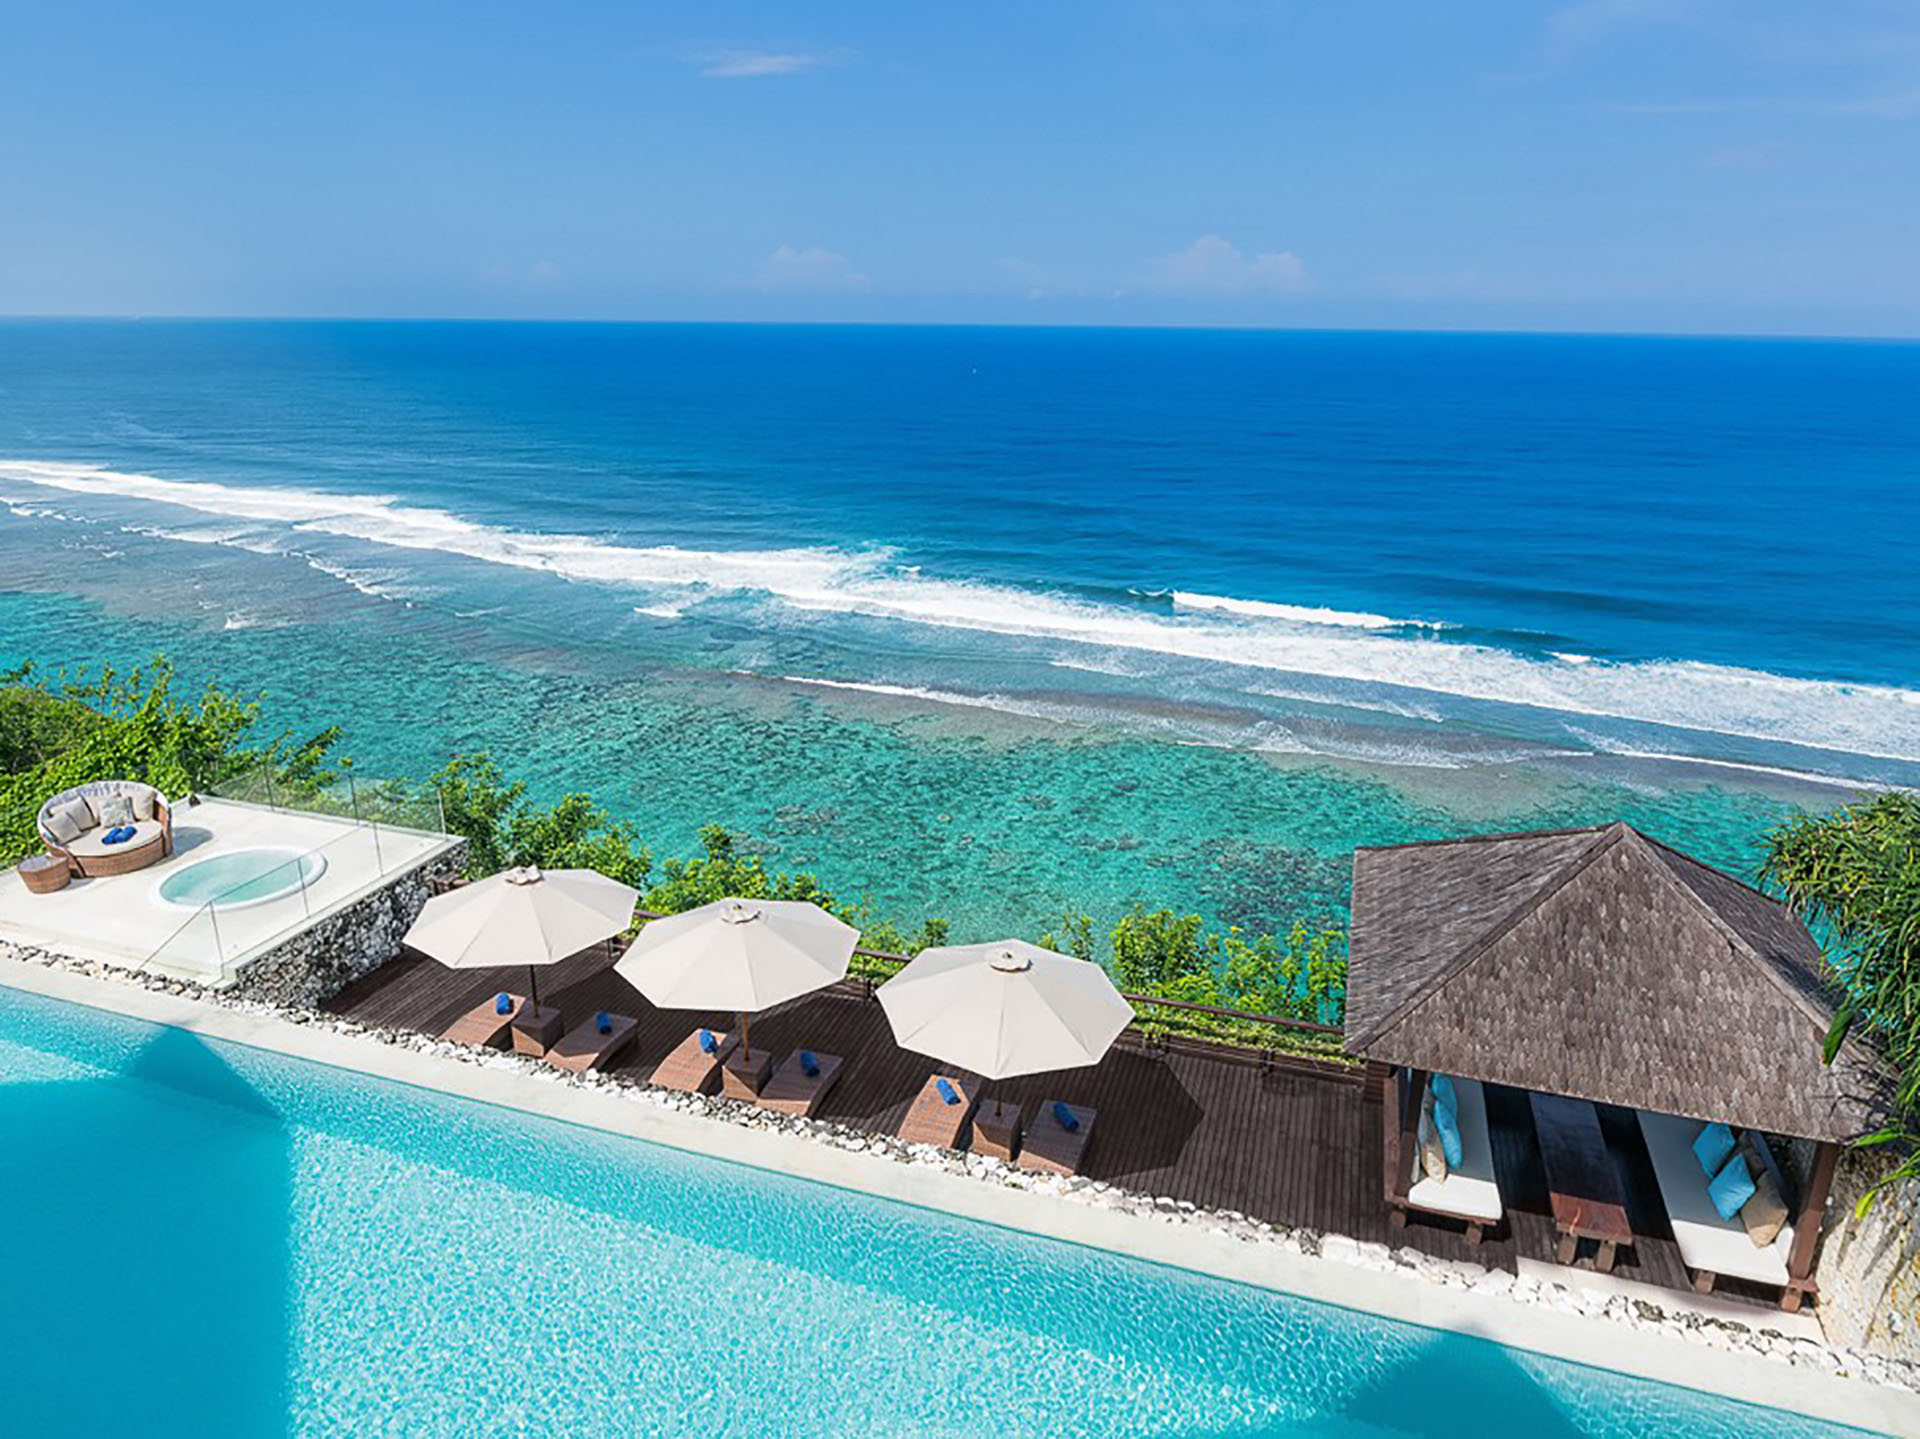 Grand Cliff Ungasan - Bali Luxury Villas